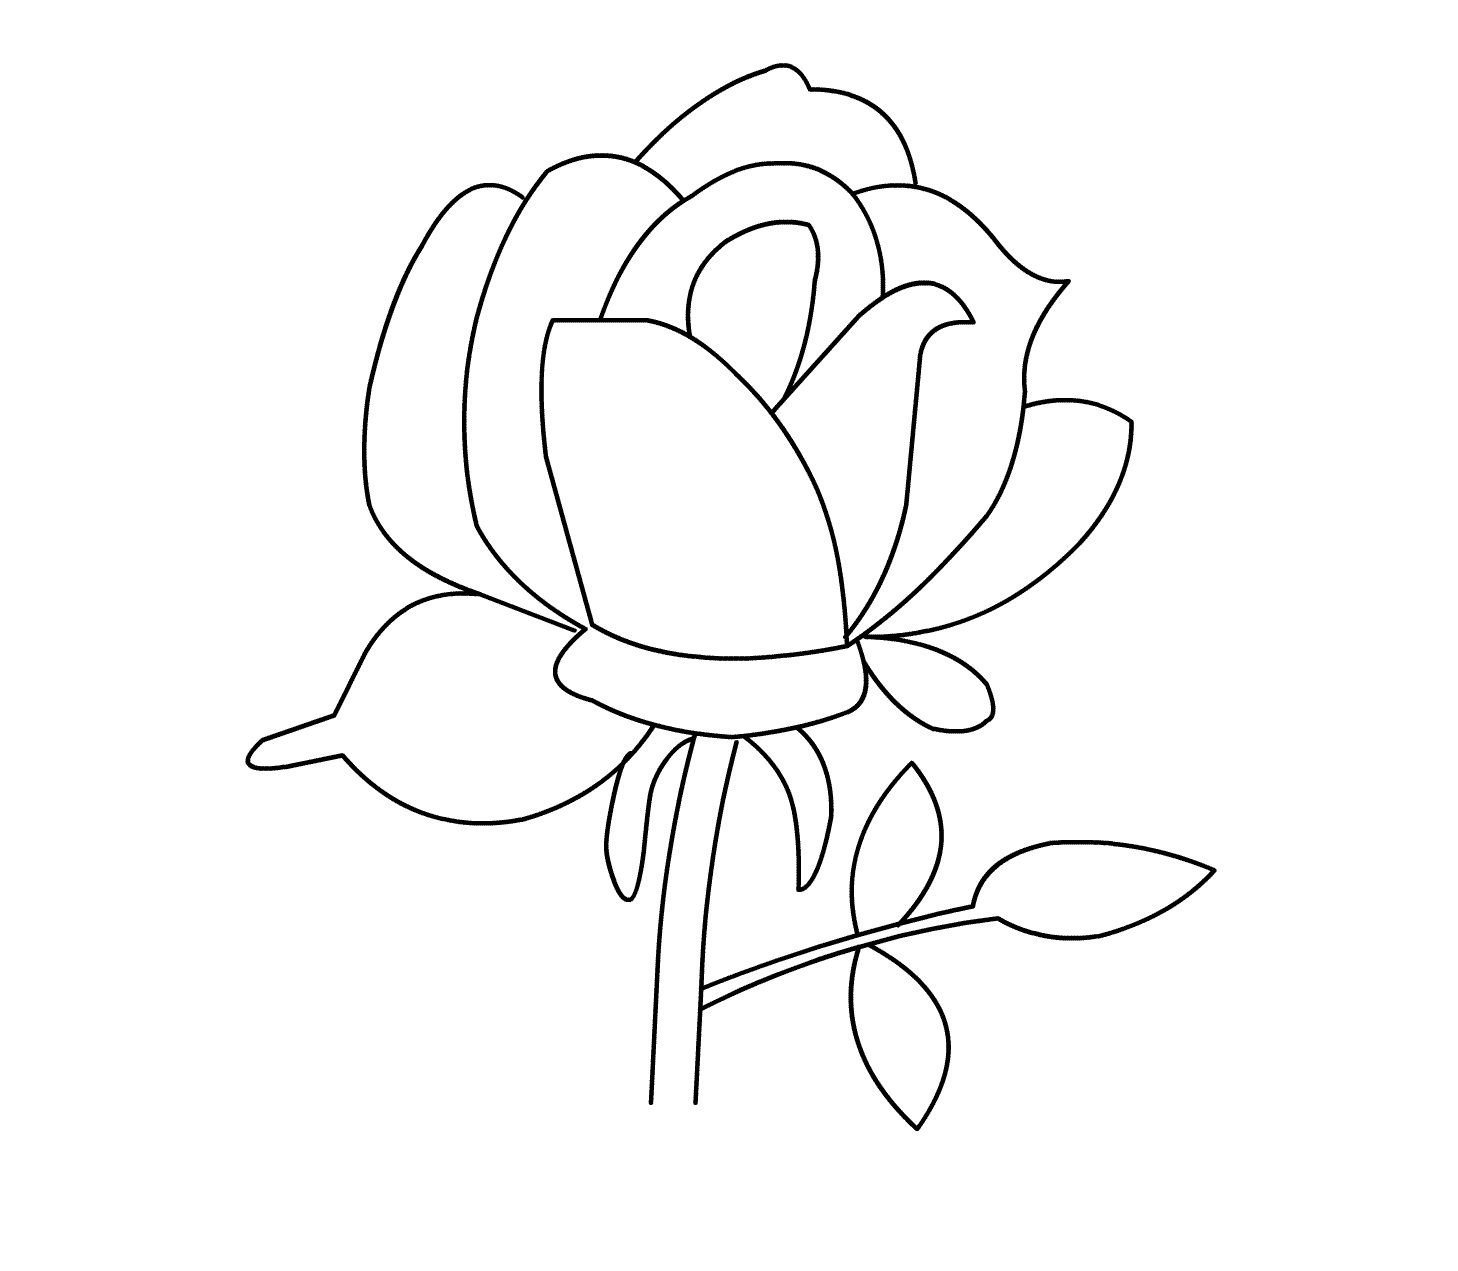 coloring pages rose roses coloring pages to download and print for free pages coloring rose